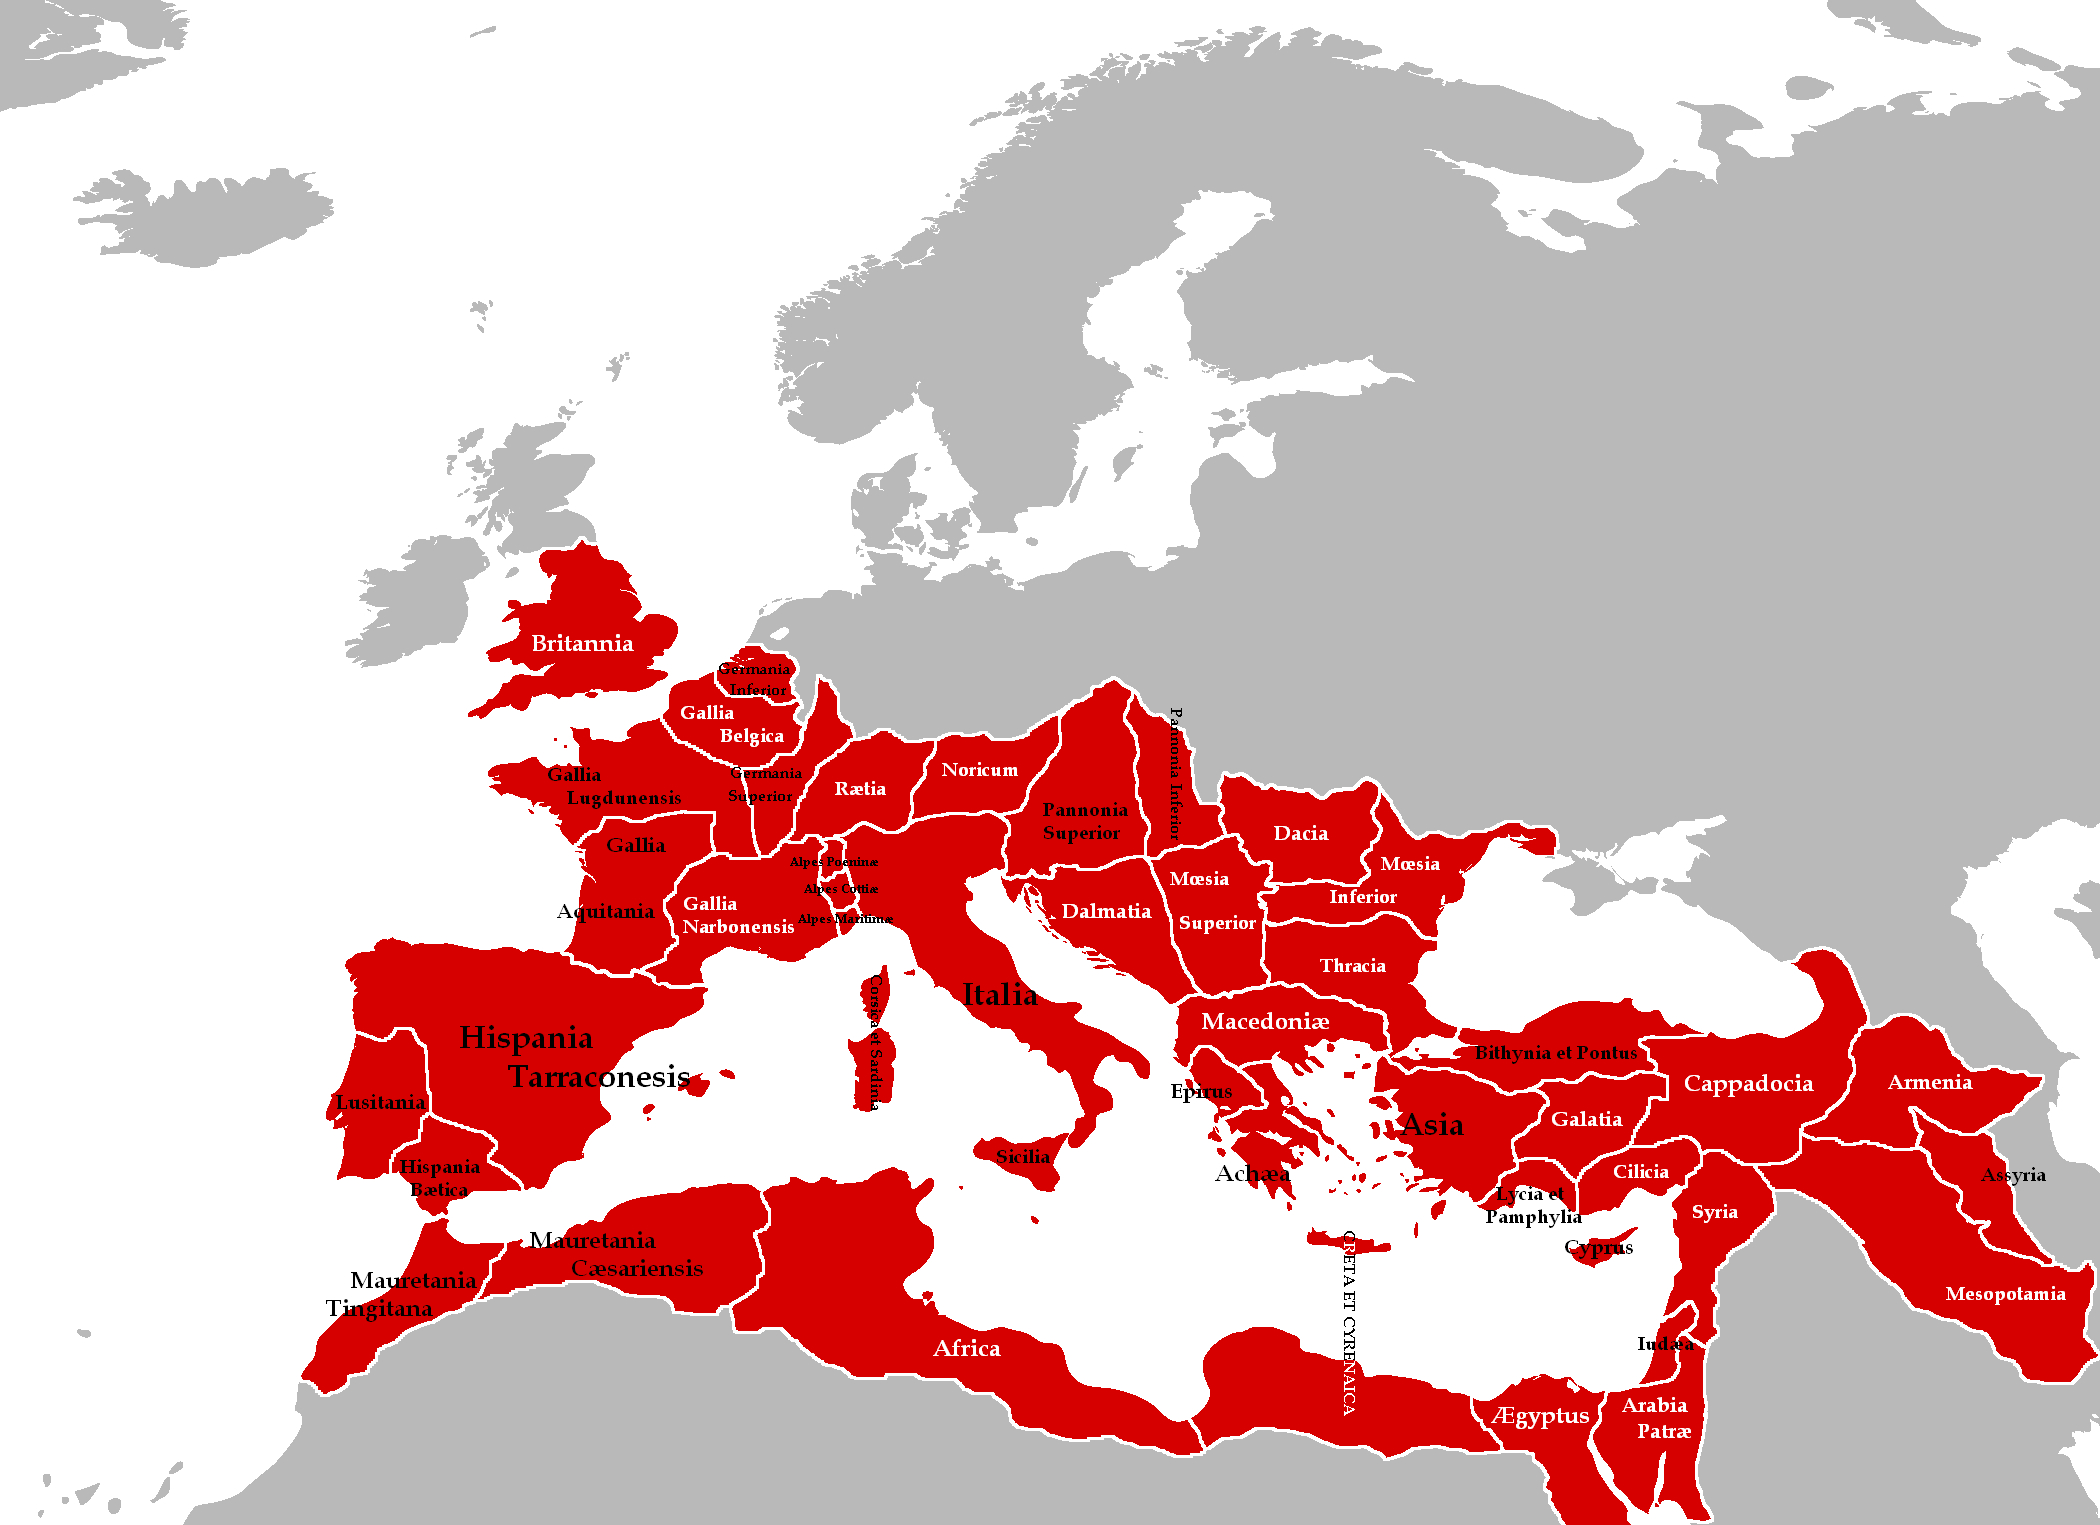 ccot roman empire Roman empire definition, the lands and peoples subject to the authority of ancient rome see more a later empire, as that of charlemagne or the byzantine empire, regarded as a restoration or.